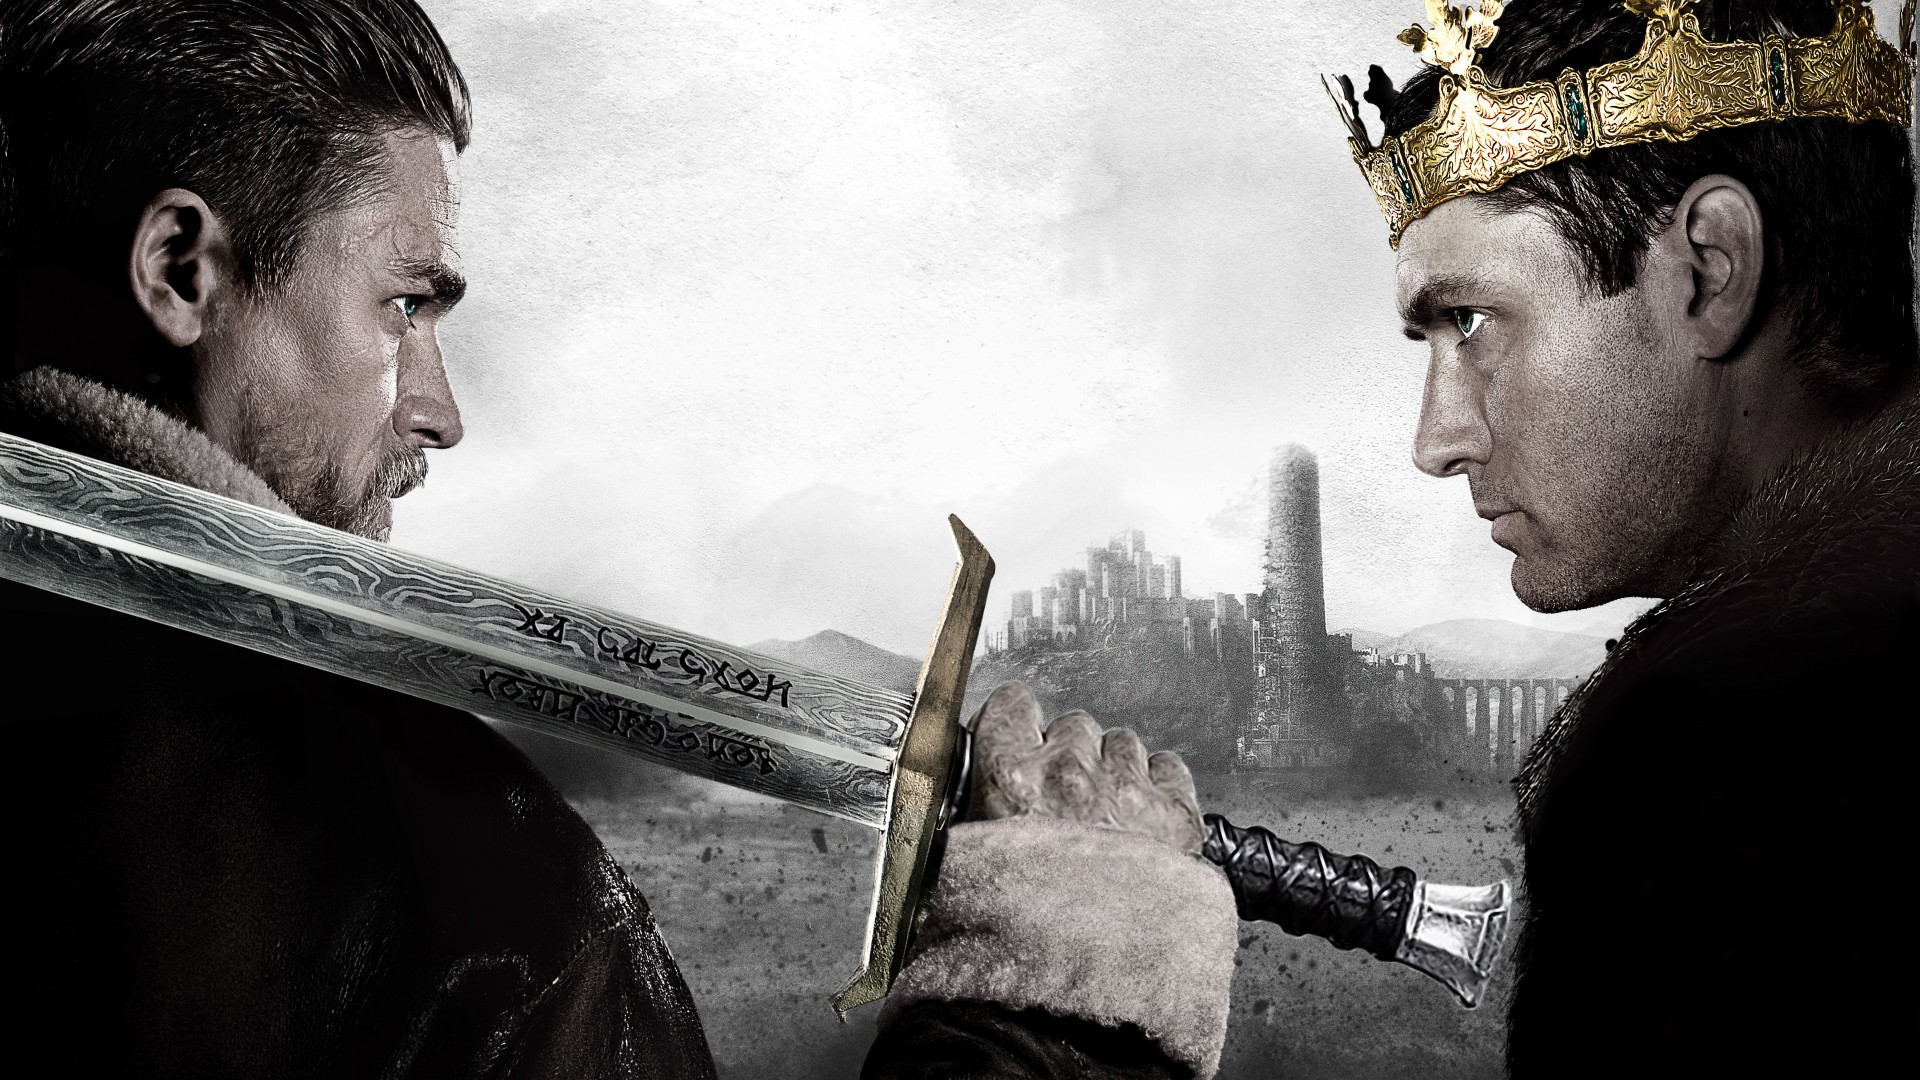 LUUK VS LUUK: KING ARTHUR: LEGEND OF THE SWORD